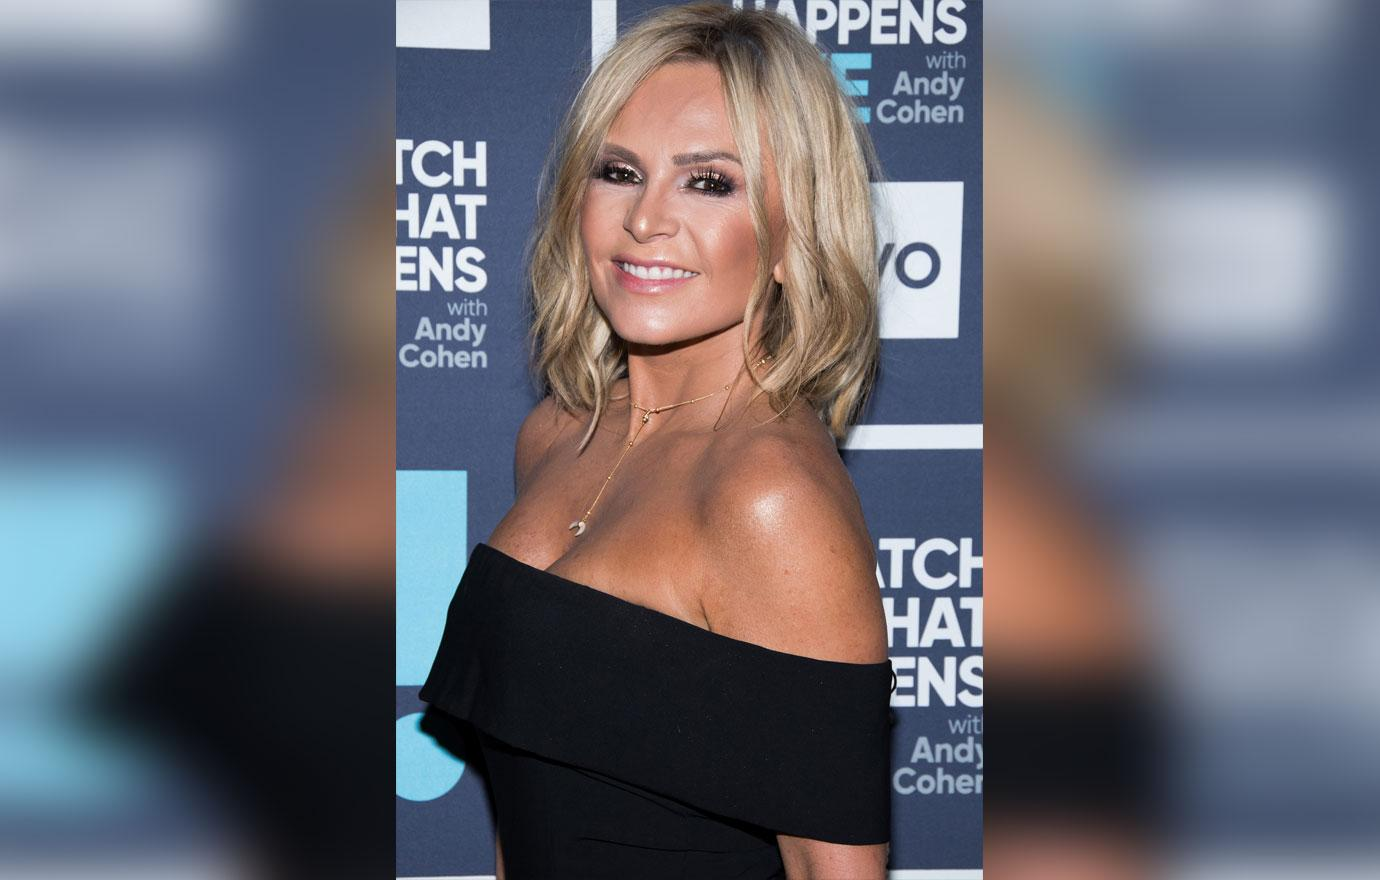 Tamra Judge Shares an Update on Her Skin Cancer: Photo